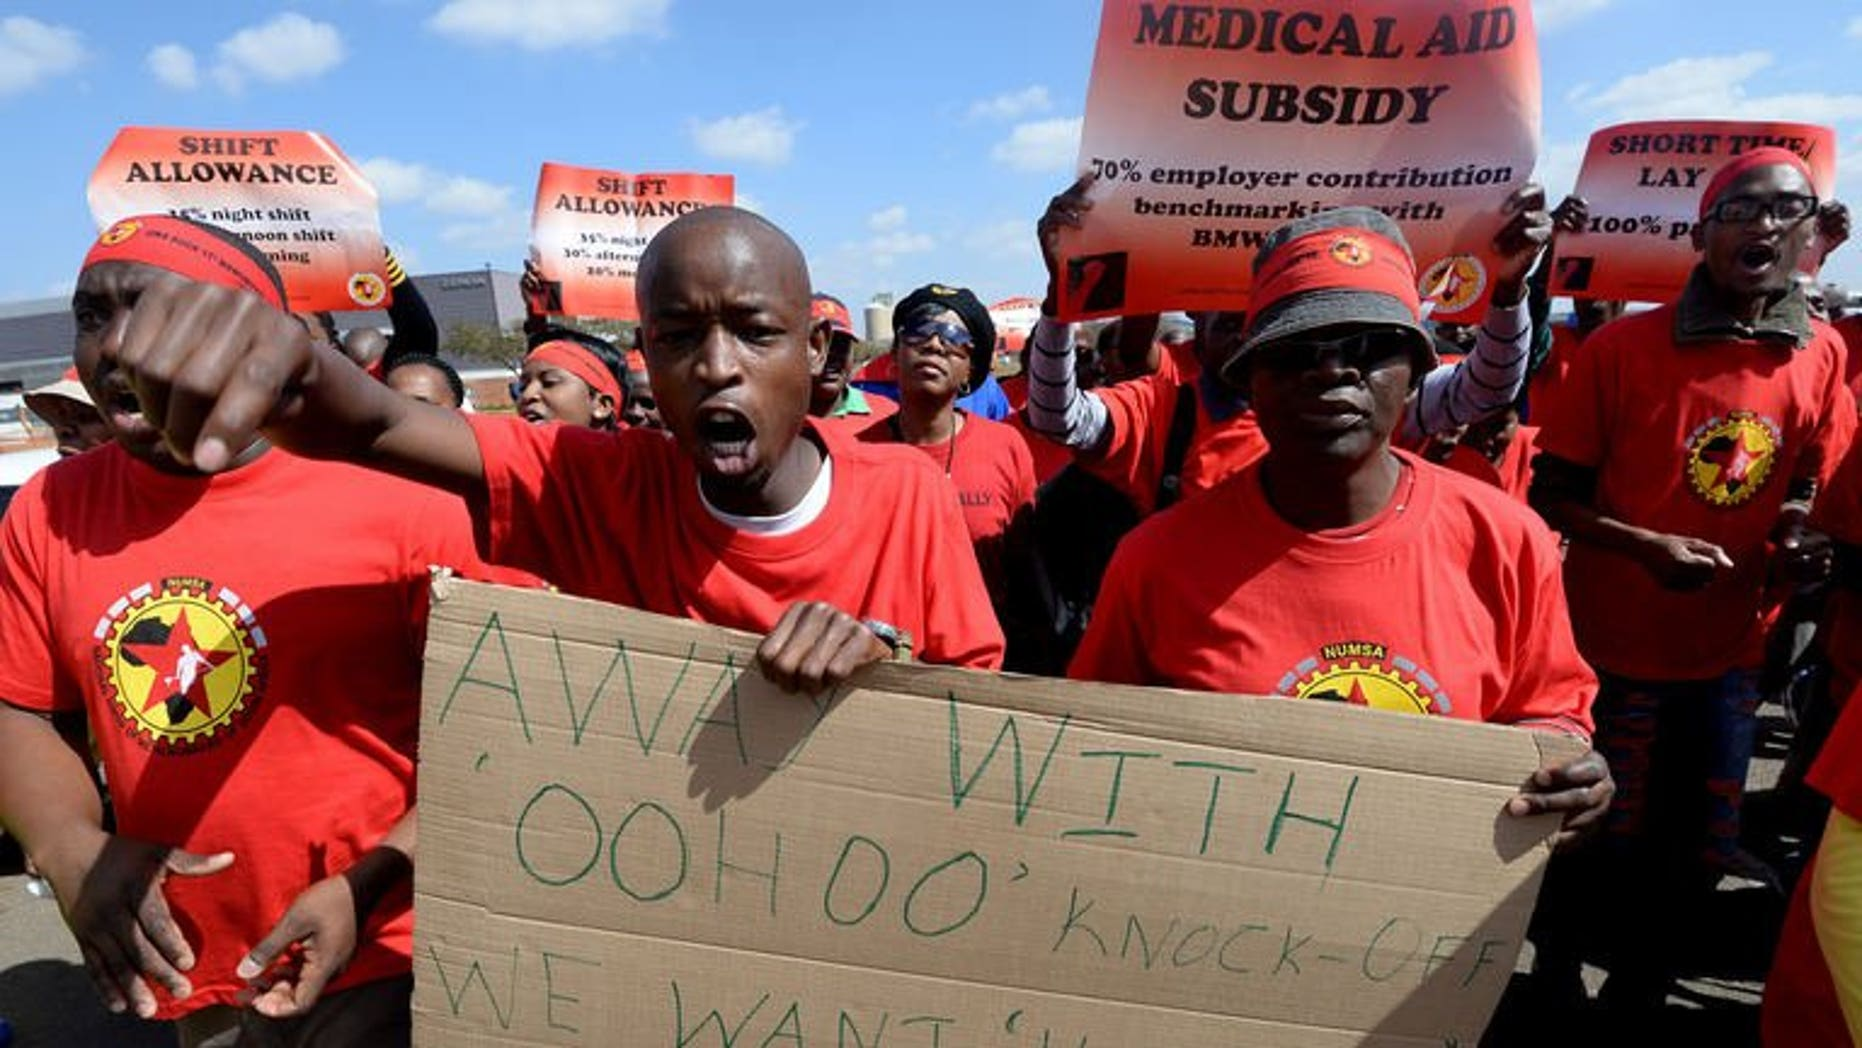 Workers on strike hold signs as they take part in a demonstration outside Ford's plant in Pretoria on August 20, 2013. A striking South African auto workers union will meet manufacturers on Thursday in a bid to break a wage deadlock that has crippled a multi-billion dollar export market.